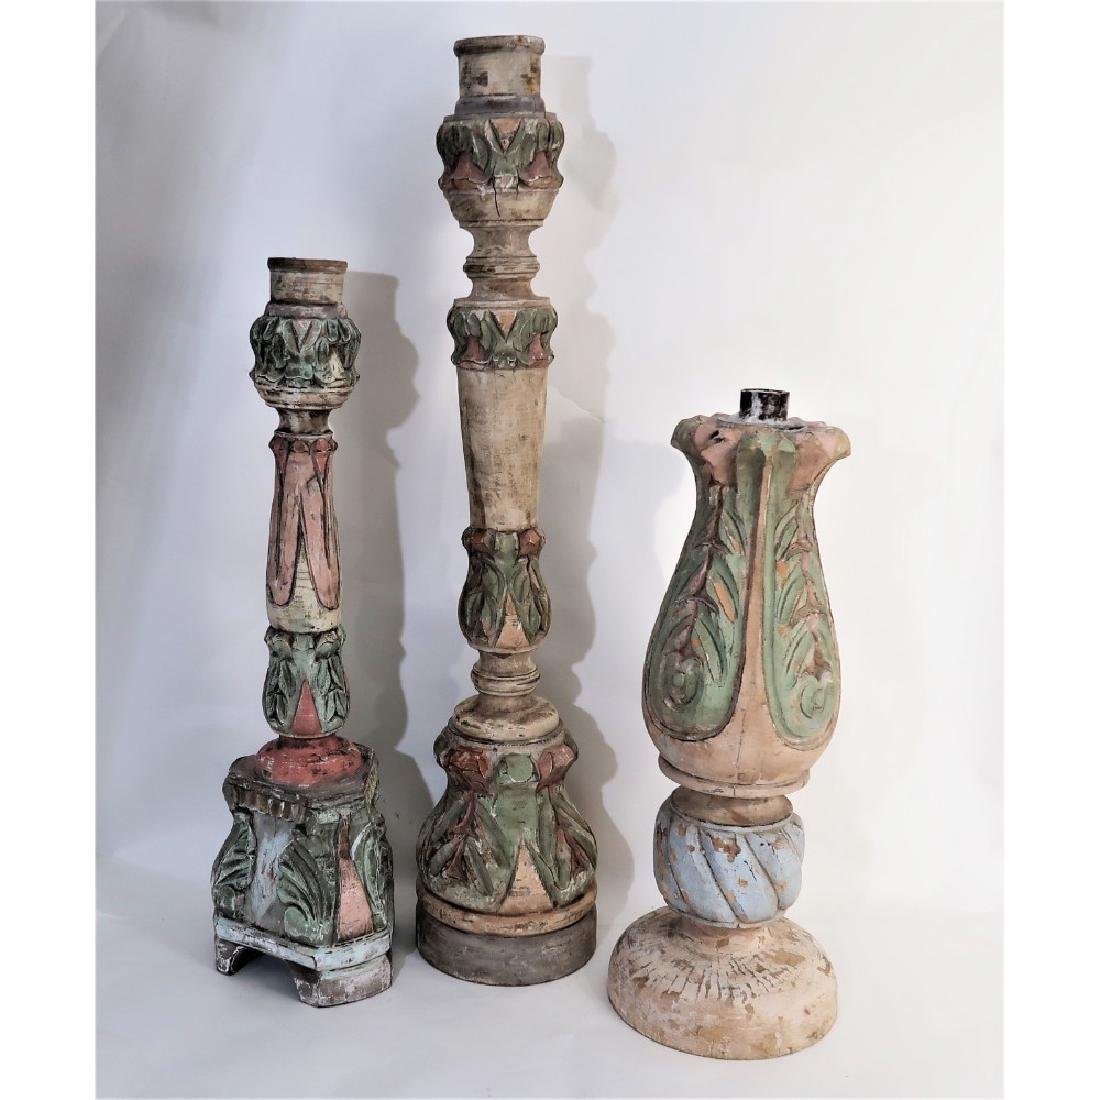 3 giant candlesticks decorative